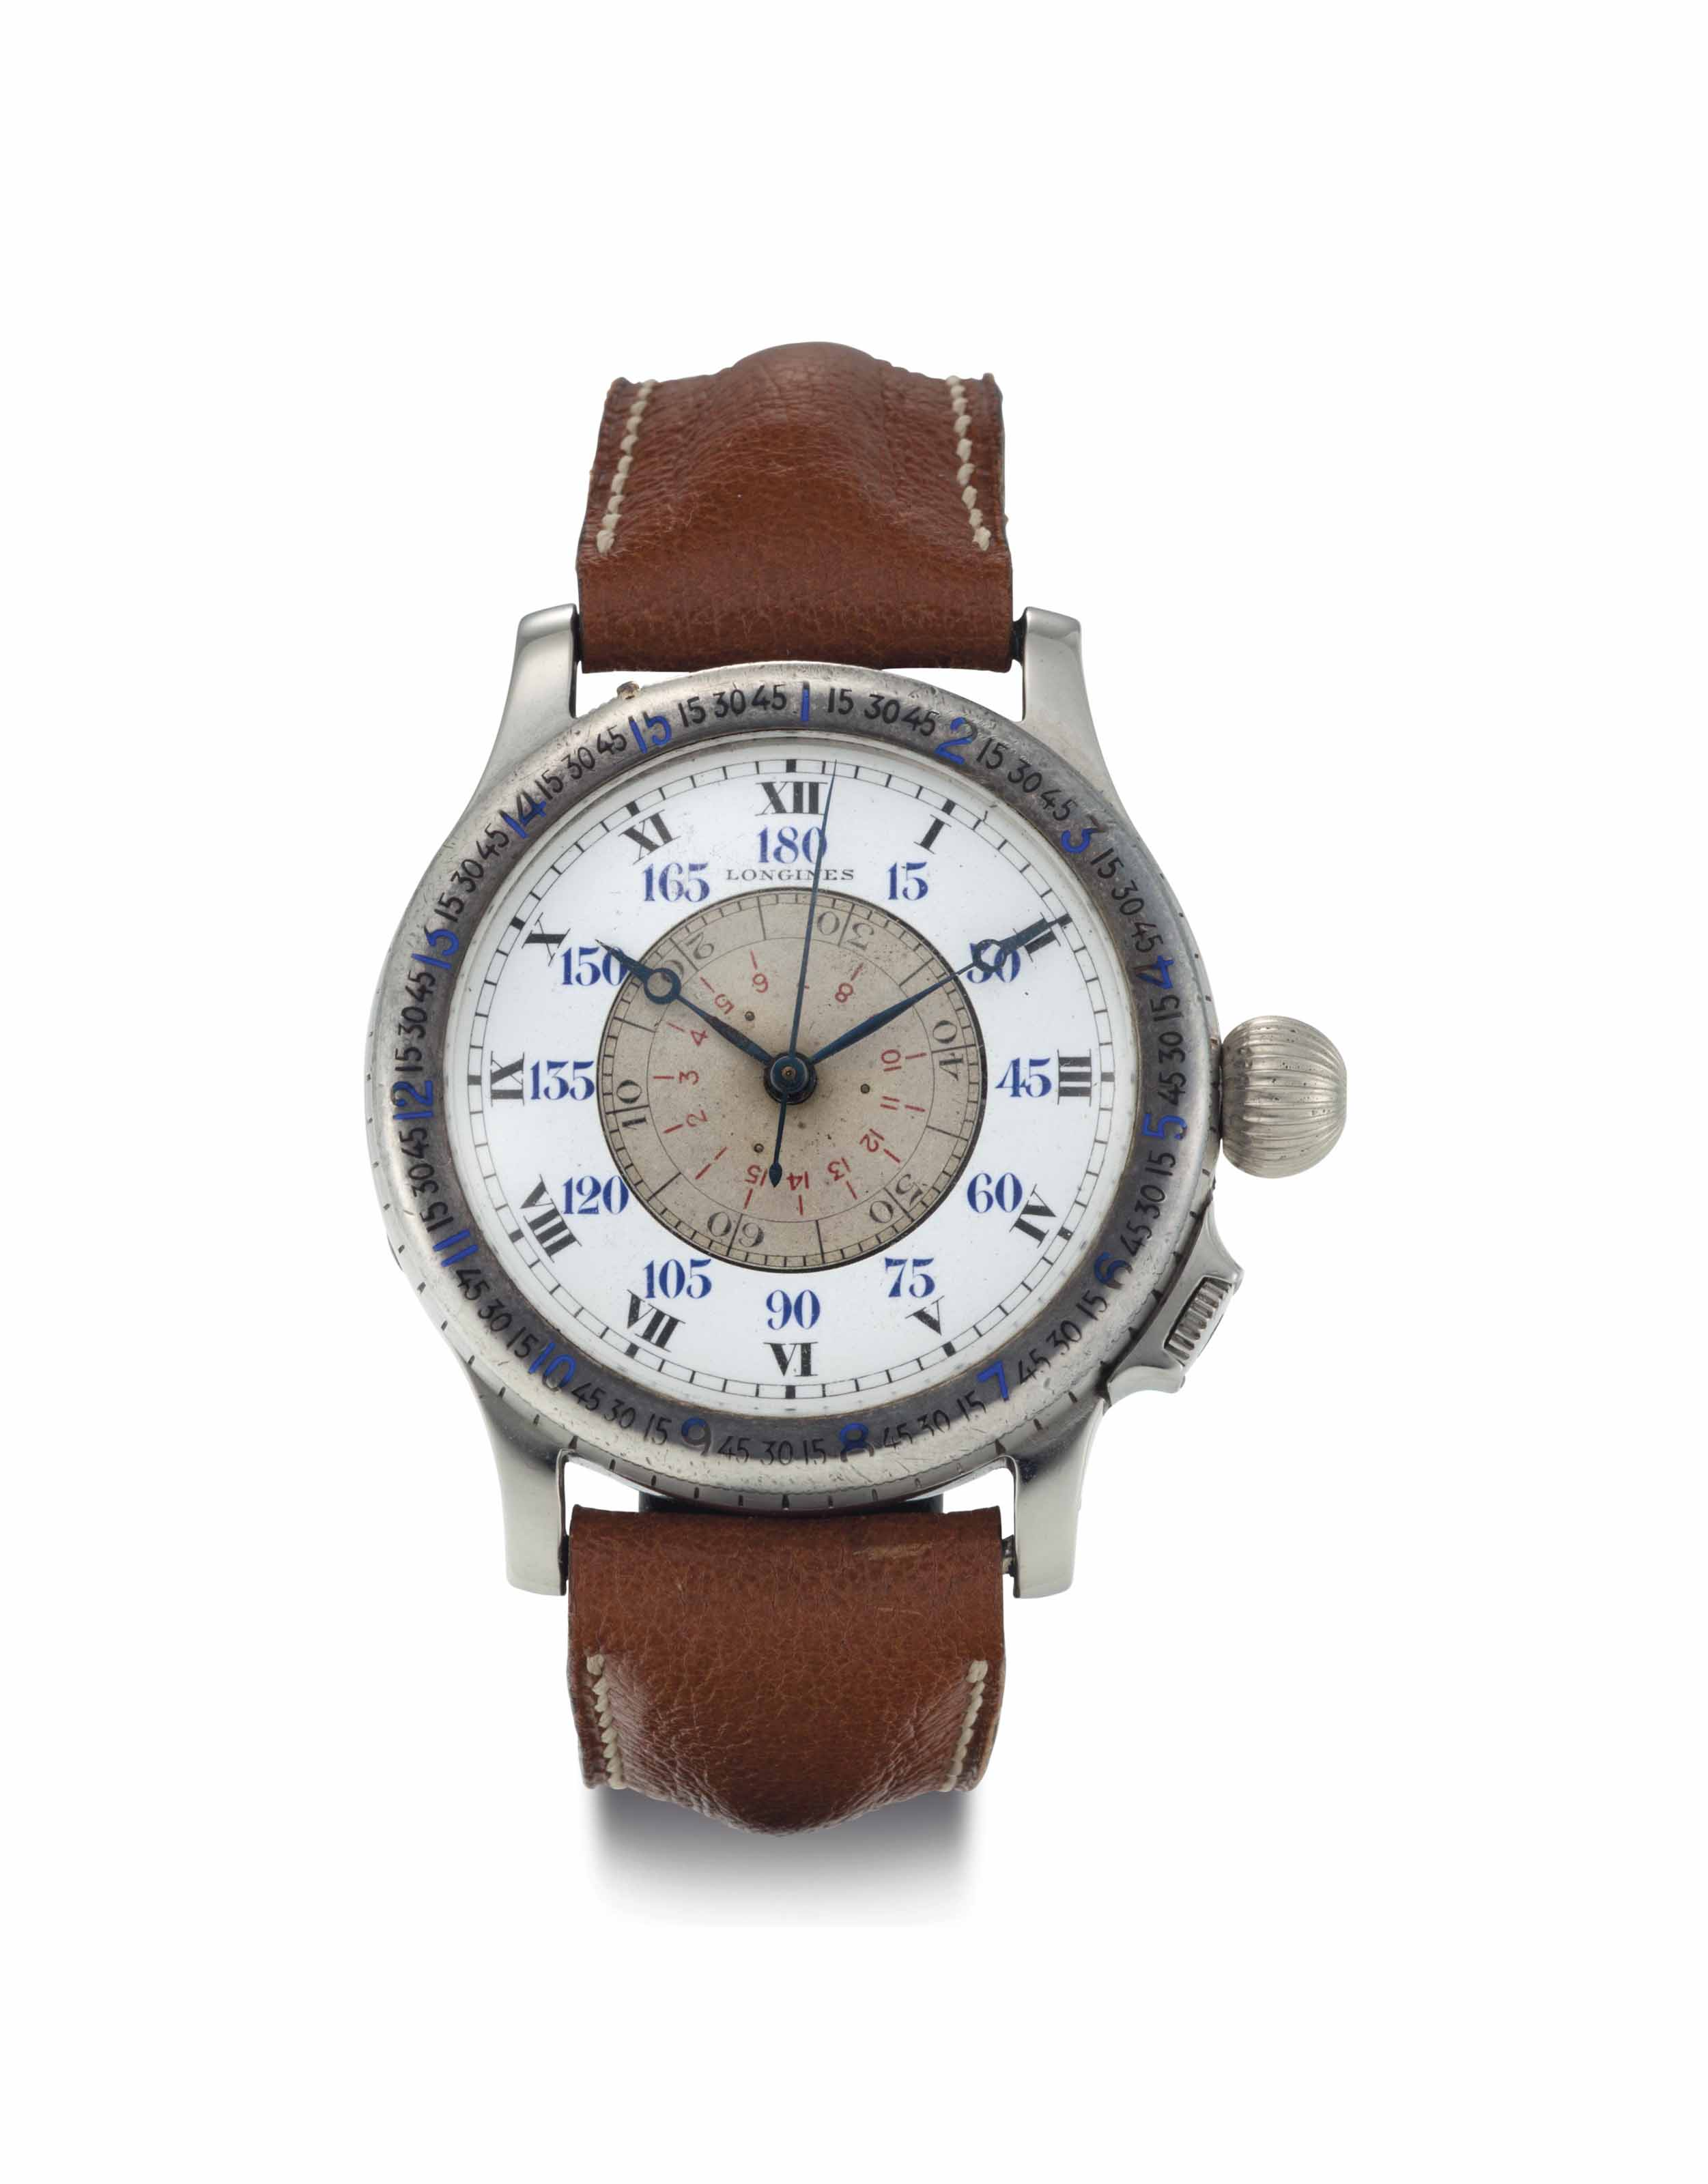 Longines. A Rare and Large Stainless Steel Aviator's Wristwatch with Center Seconds and Slide Rule